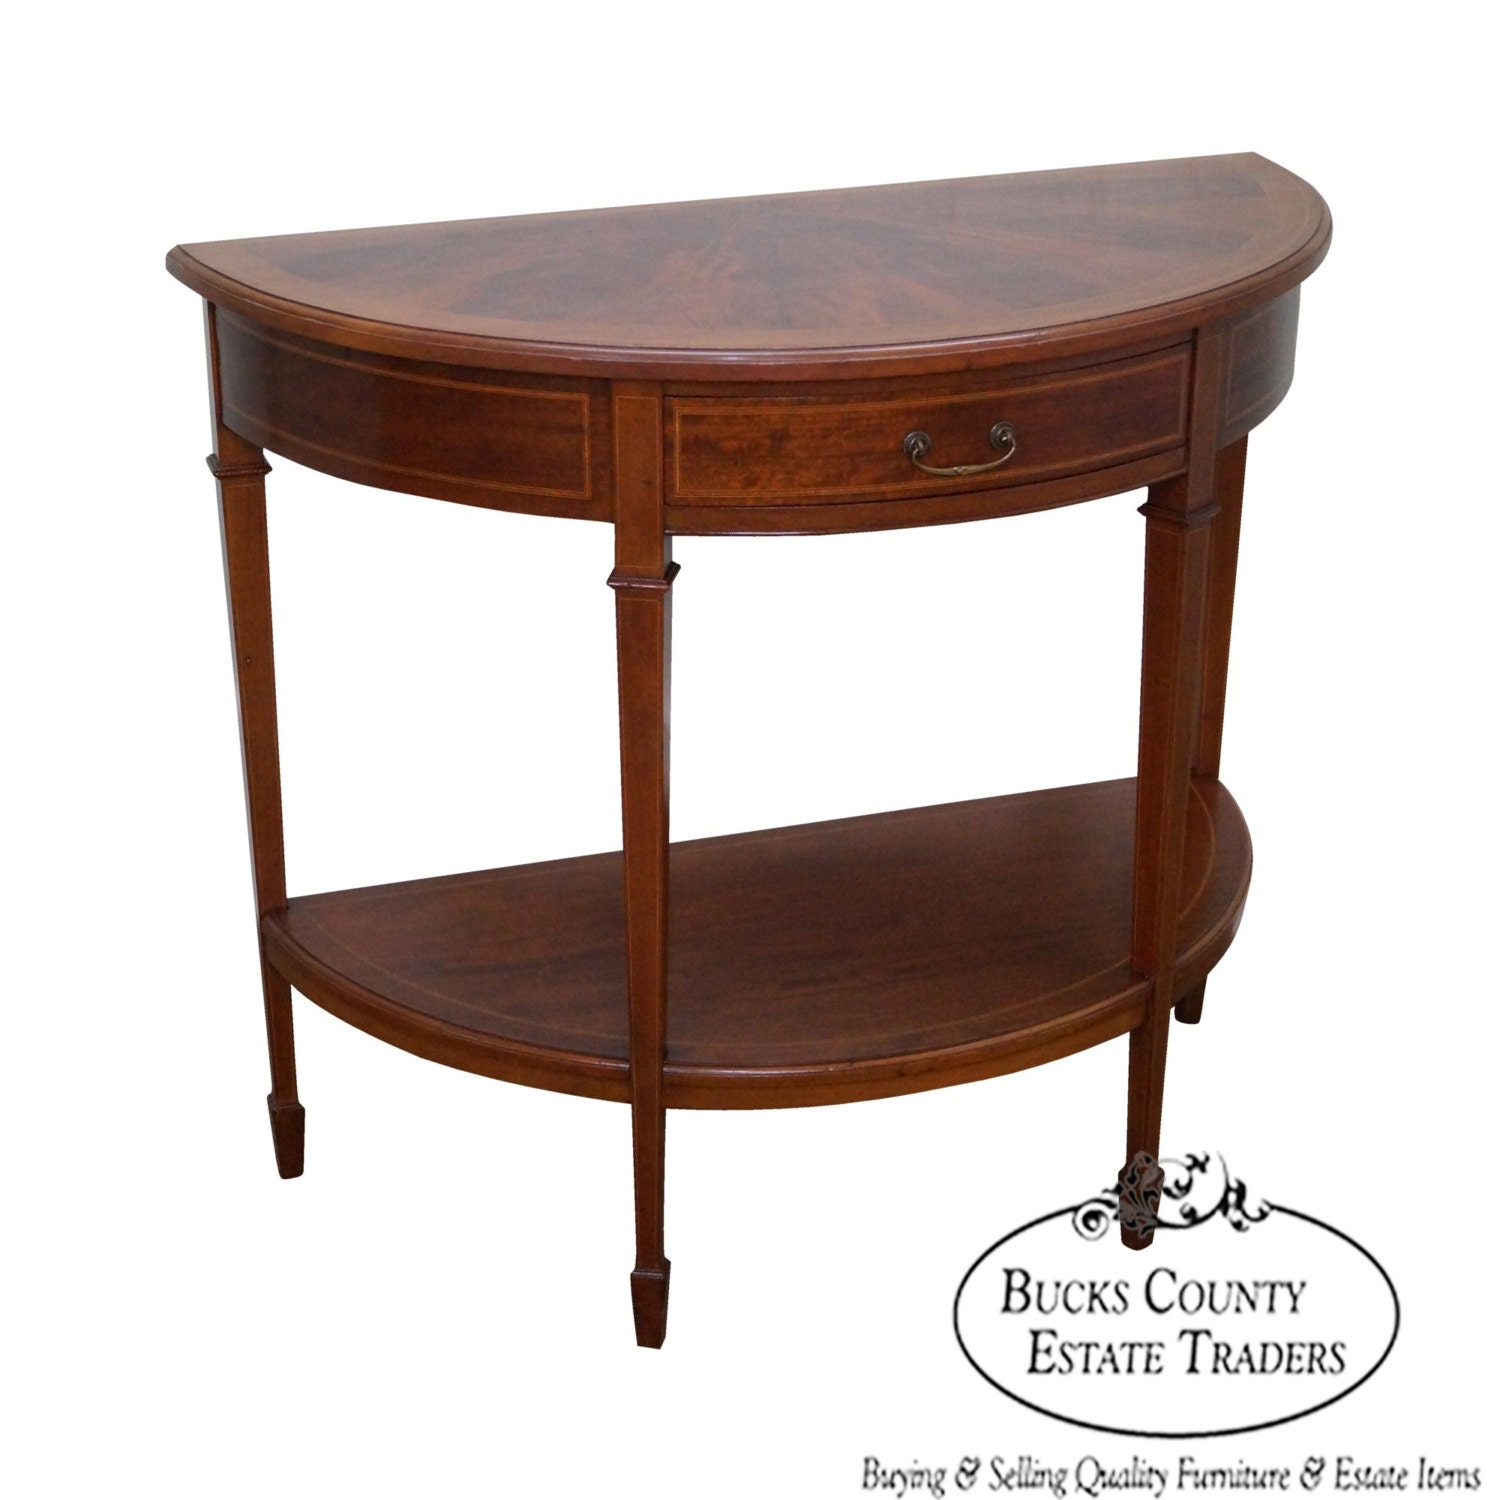 Antique flame mahogany demilune 1 drawer console table for Demilune console table with drawers